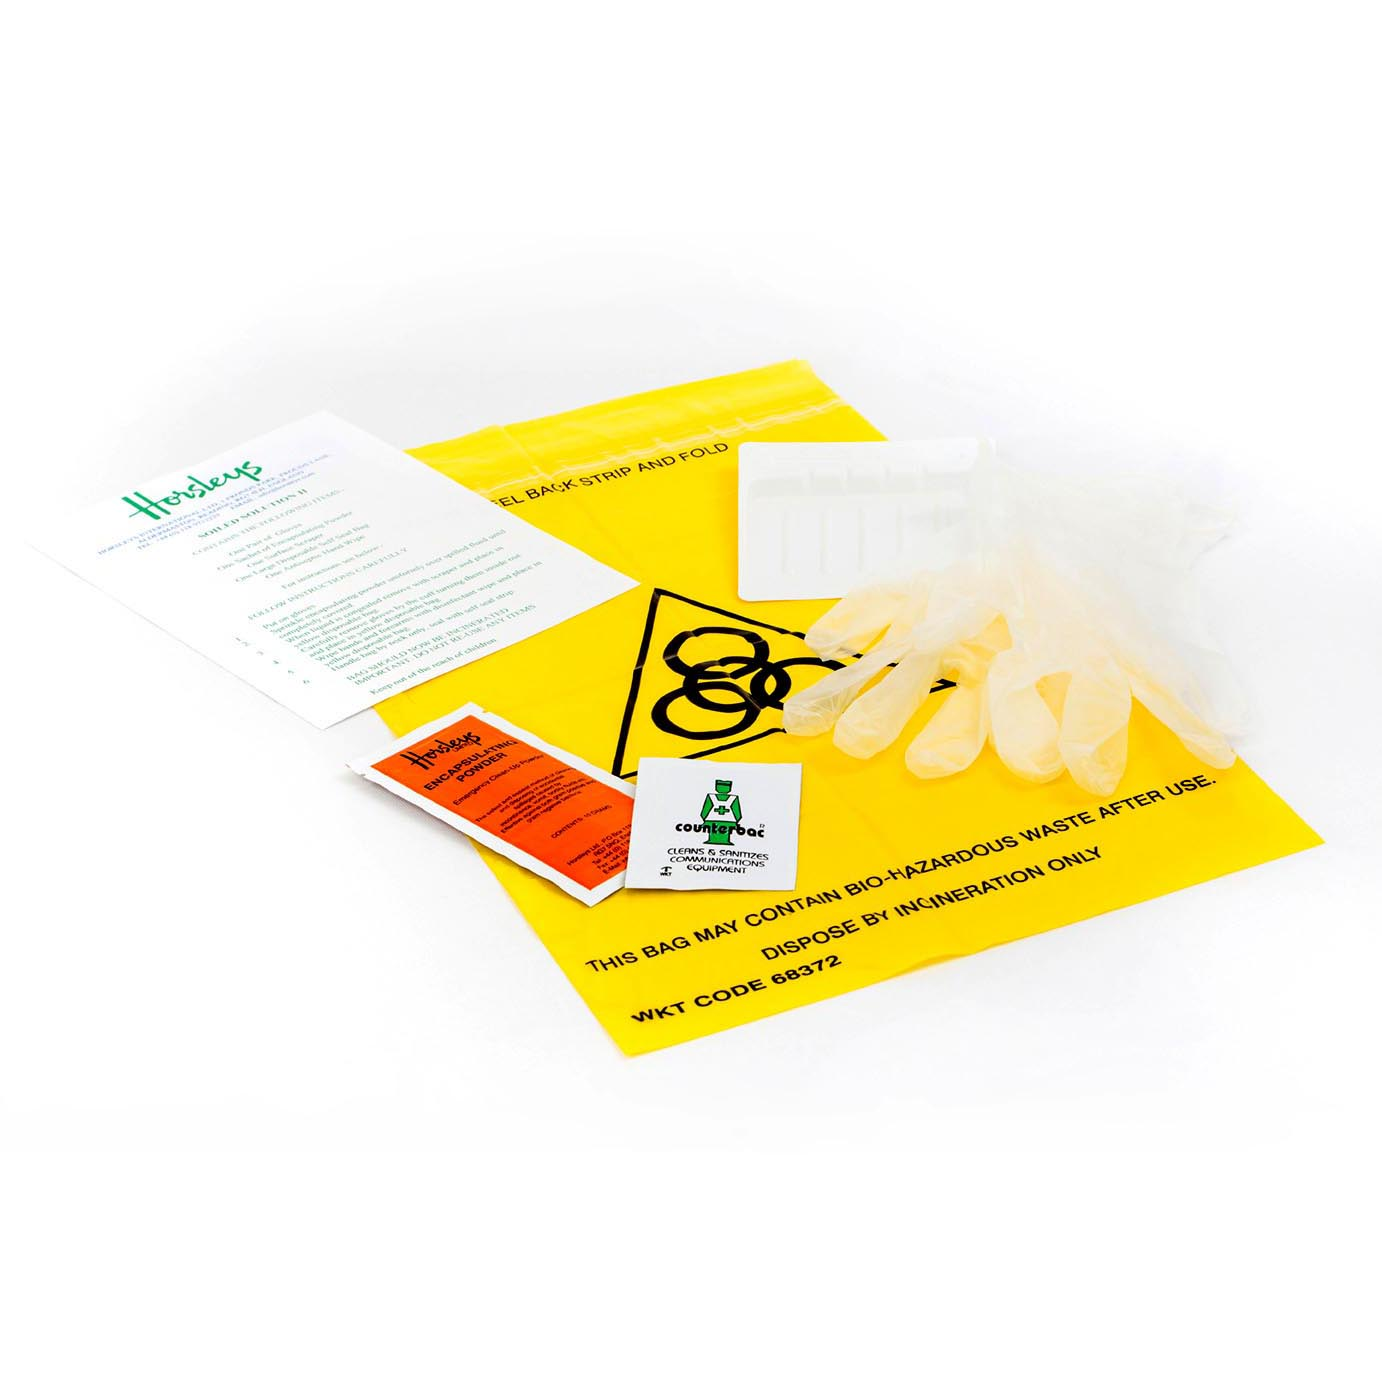 aircradft accident and spill cleaning kit from Horsleys